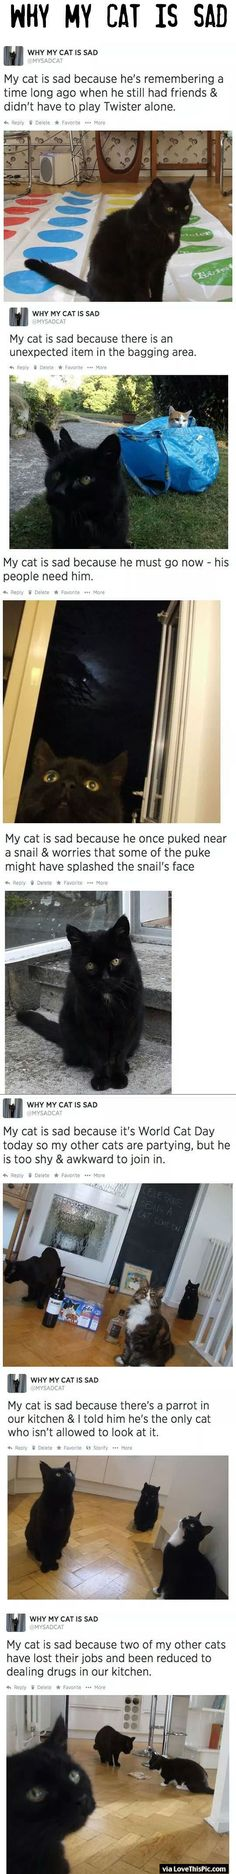 Why My Cat Is Sad cute animals cat cats adorable animal kittens pets kitten funny pictures funny animals funny cats